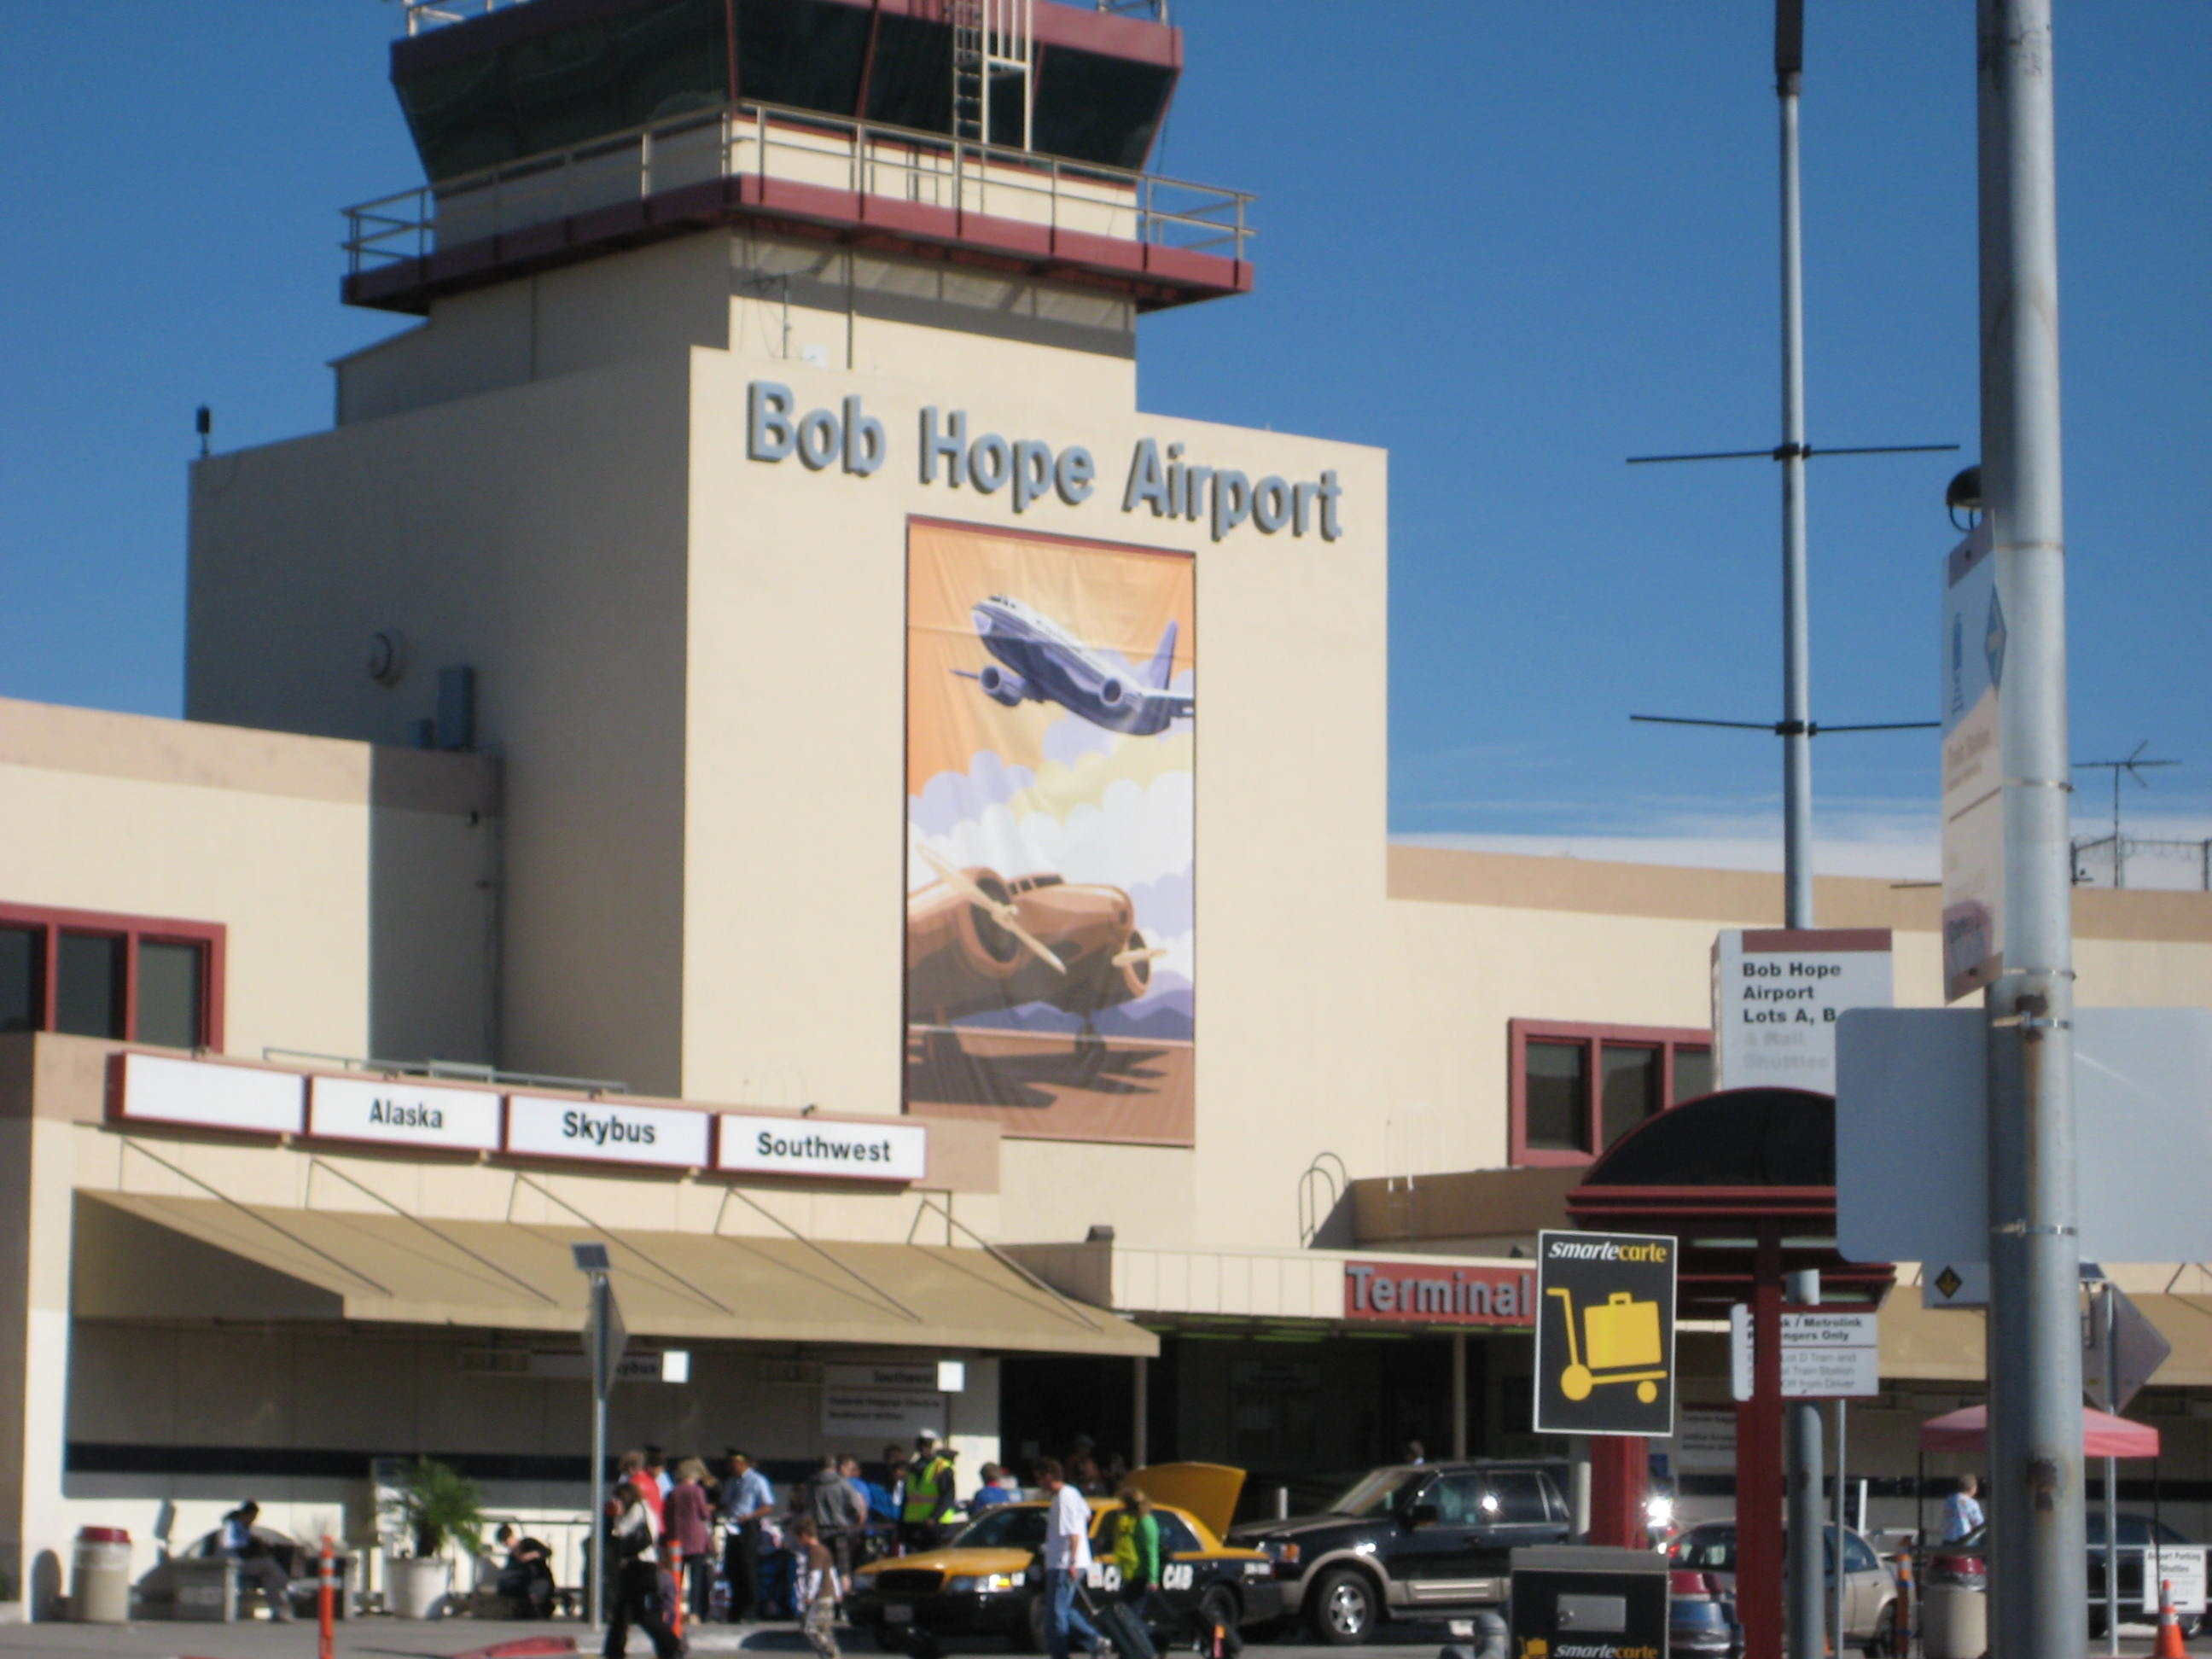 Bob Hope Airport in Burbank California